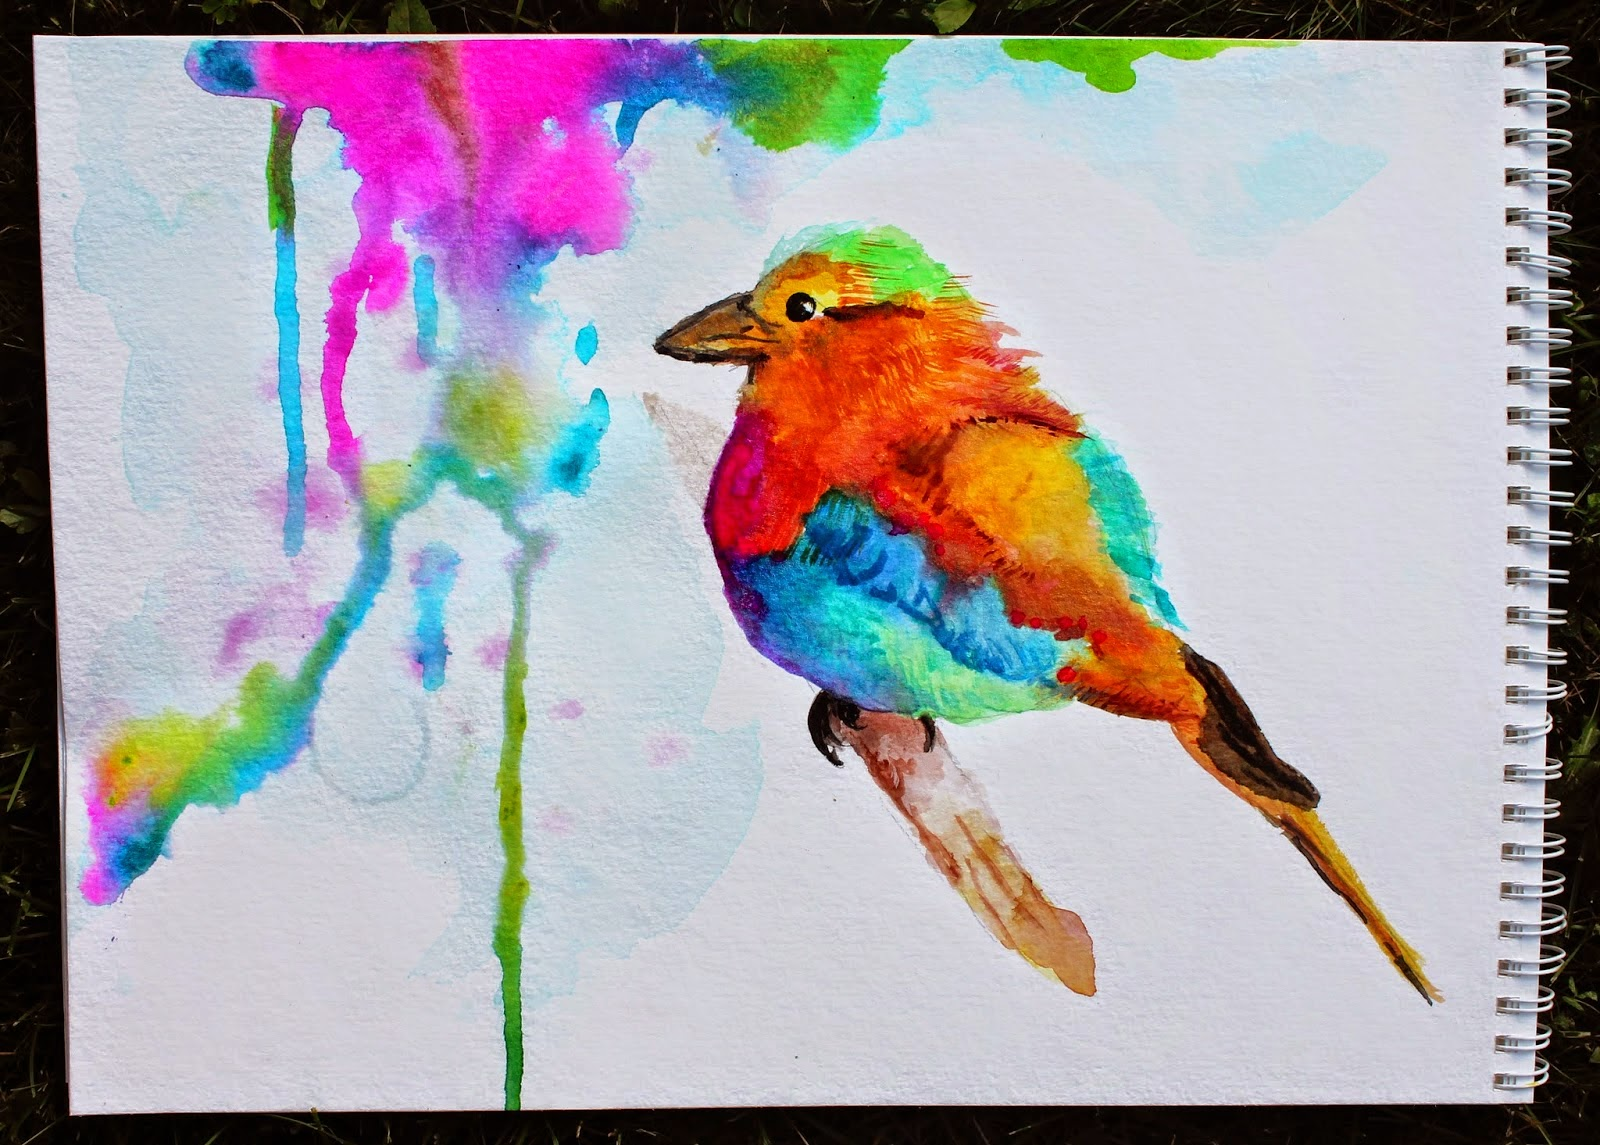 Bird Crafts For Children - Danielle's Place of Crafts and Bird pictures to paint